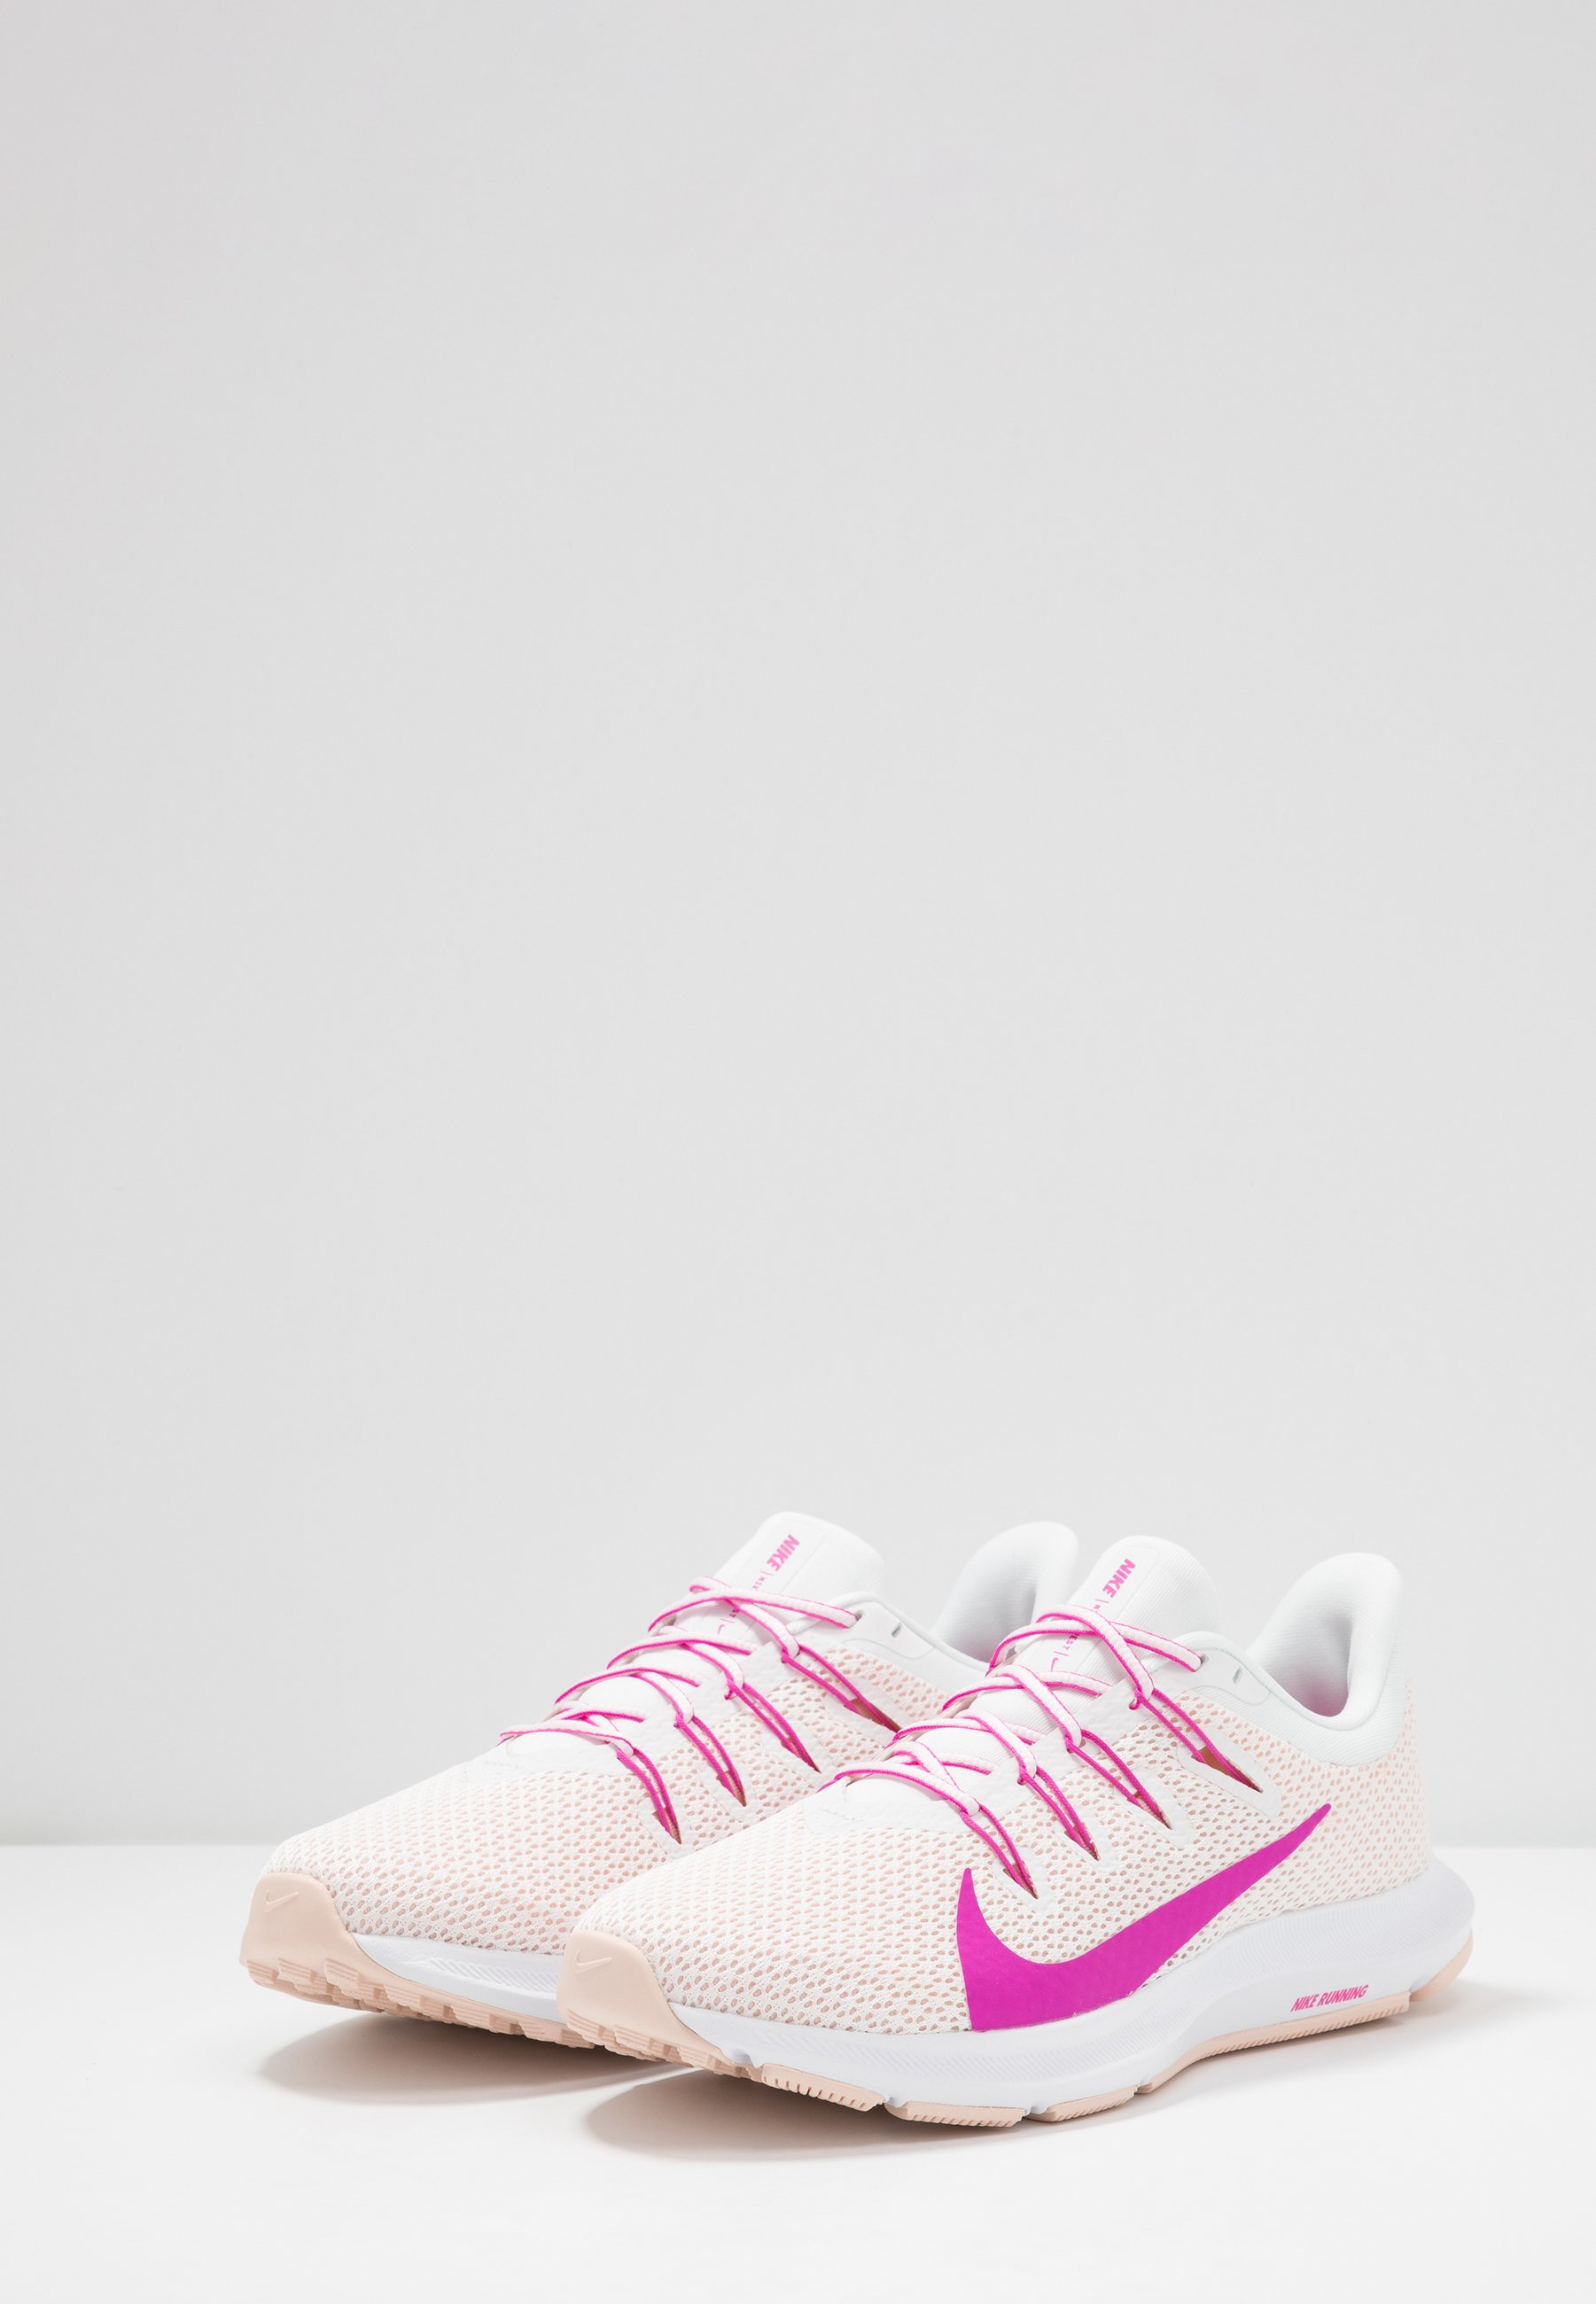 QUEST 2 Chaussures de running neutres summit whitefire pinkwashed coral